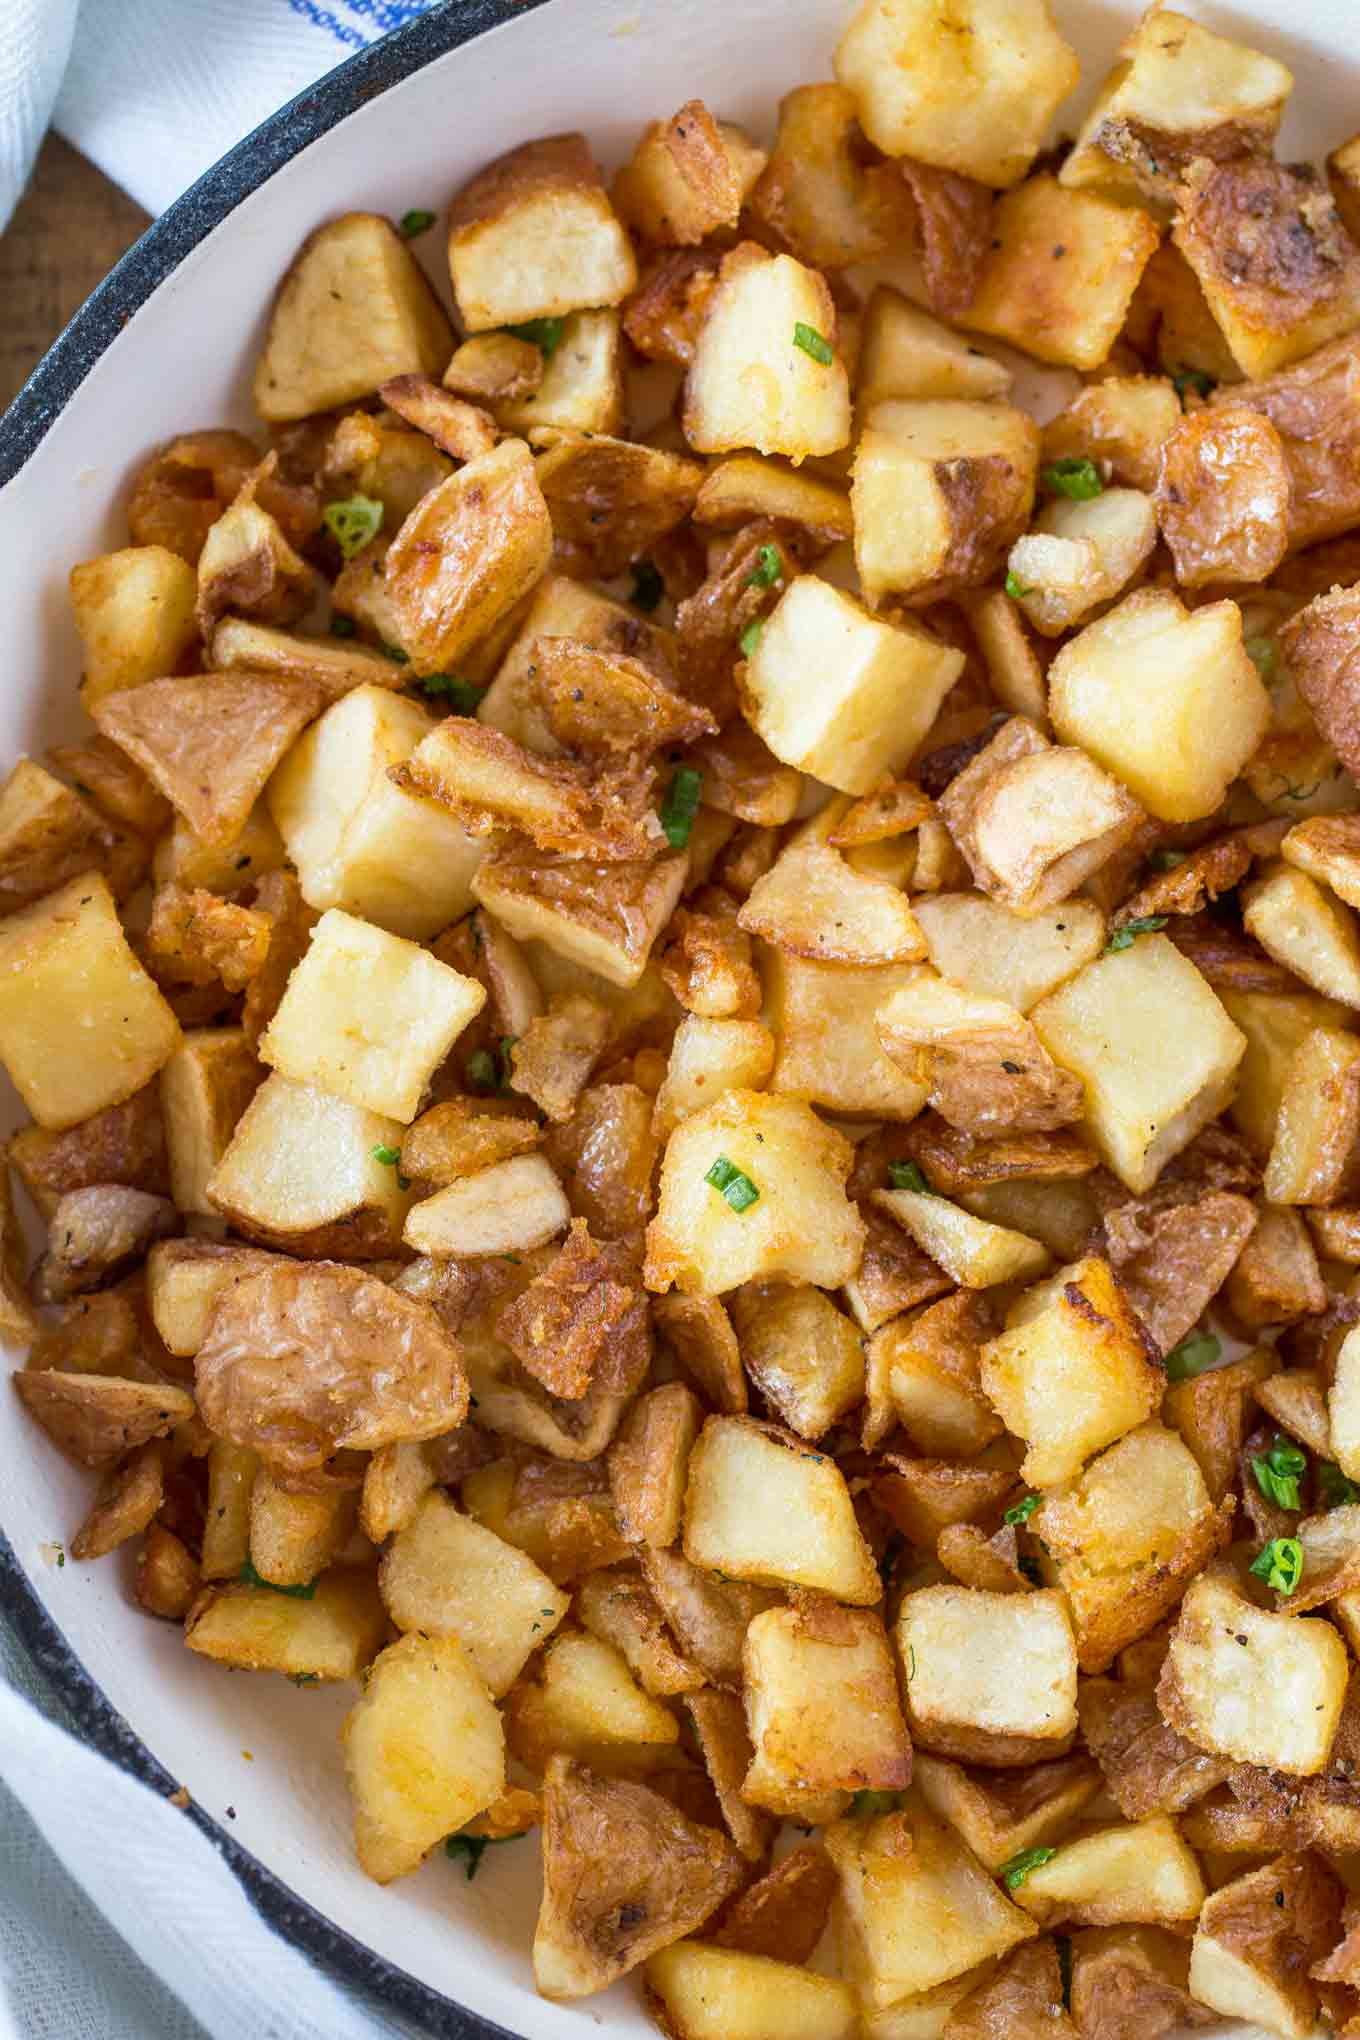 cubed hash browns from scratch